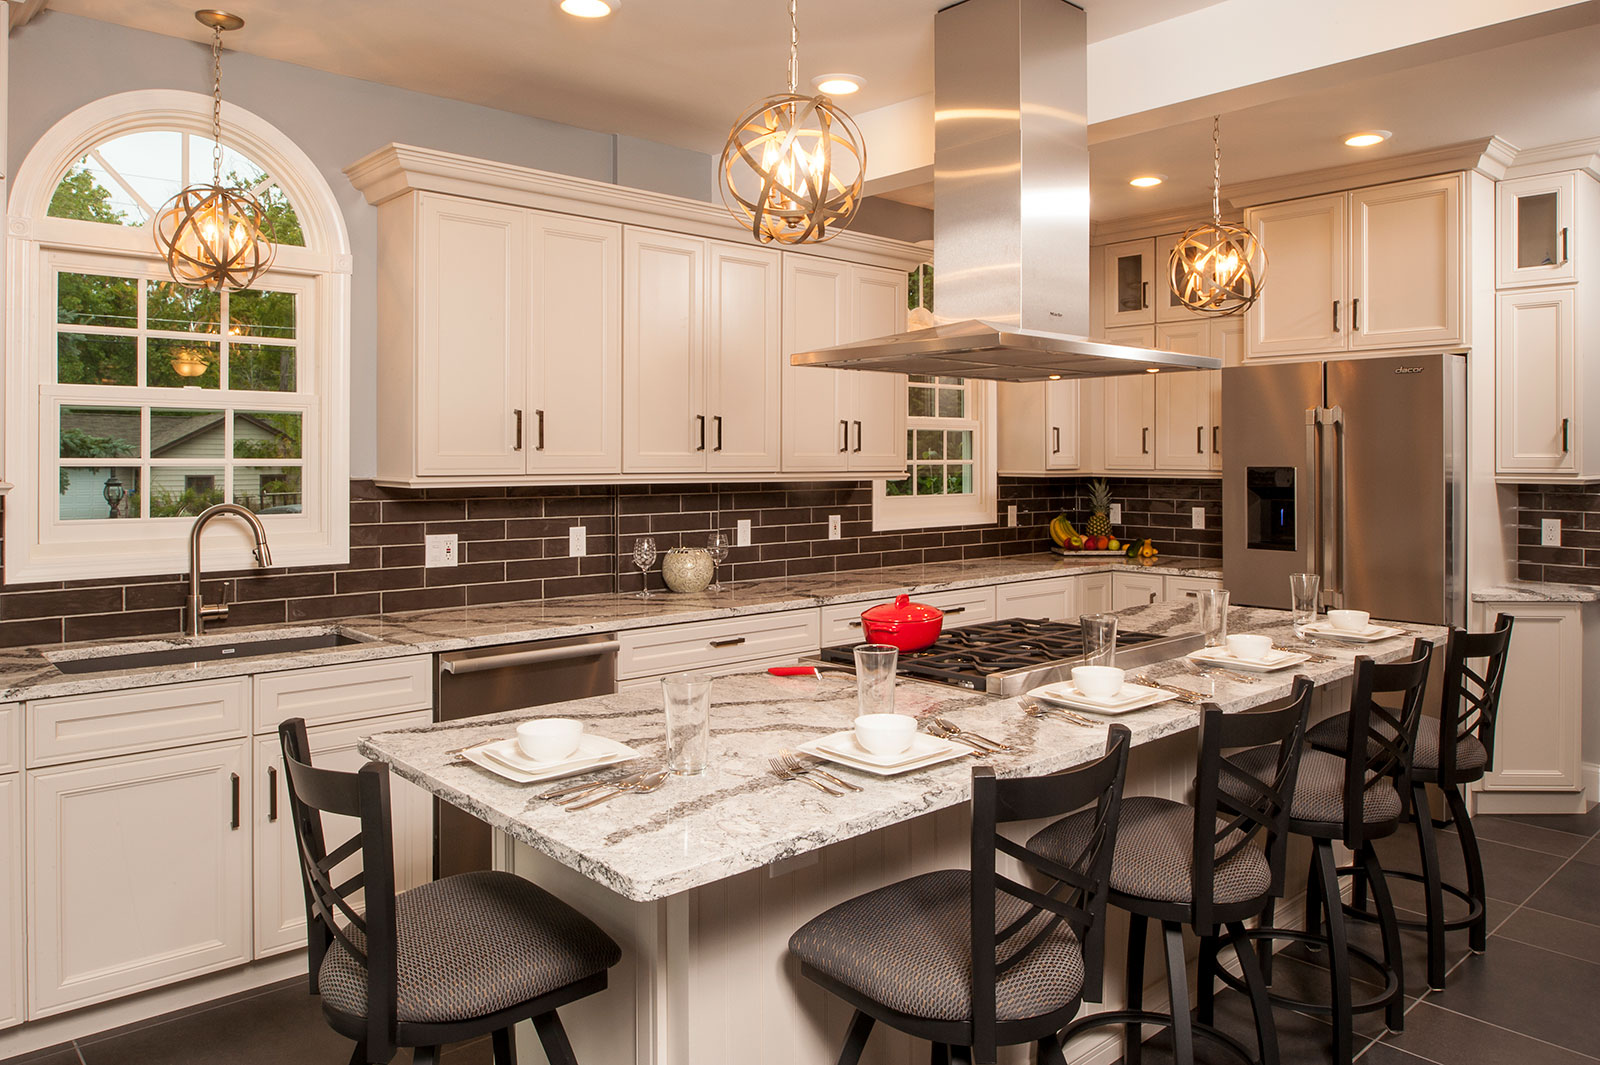 Charmant Classic Meets Current Kitchen Remodel And Design